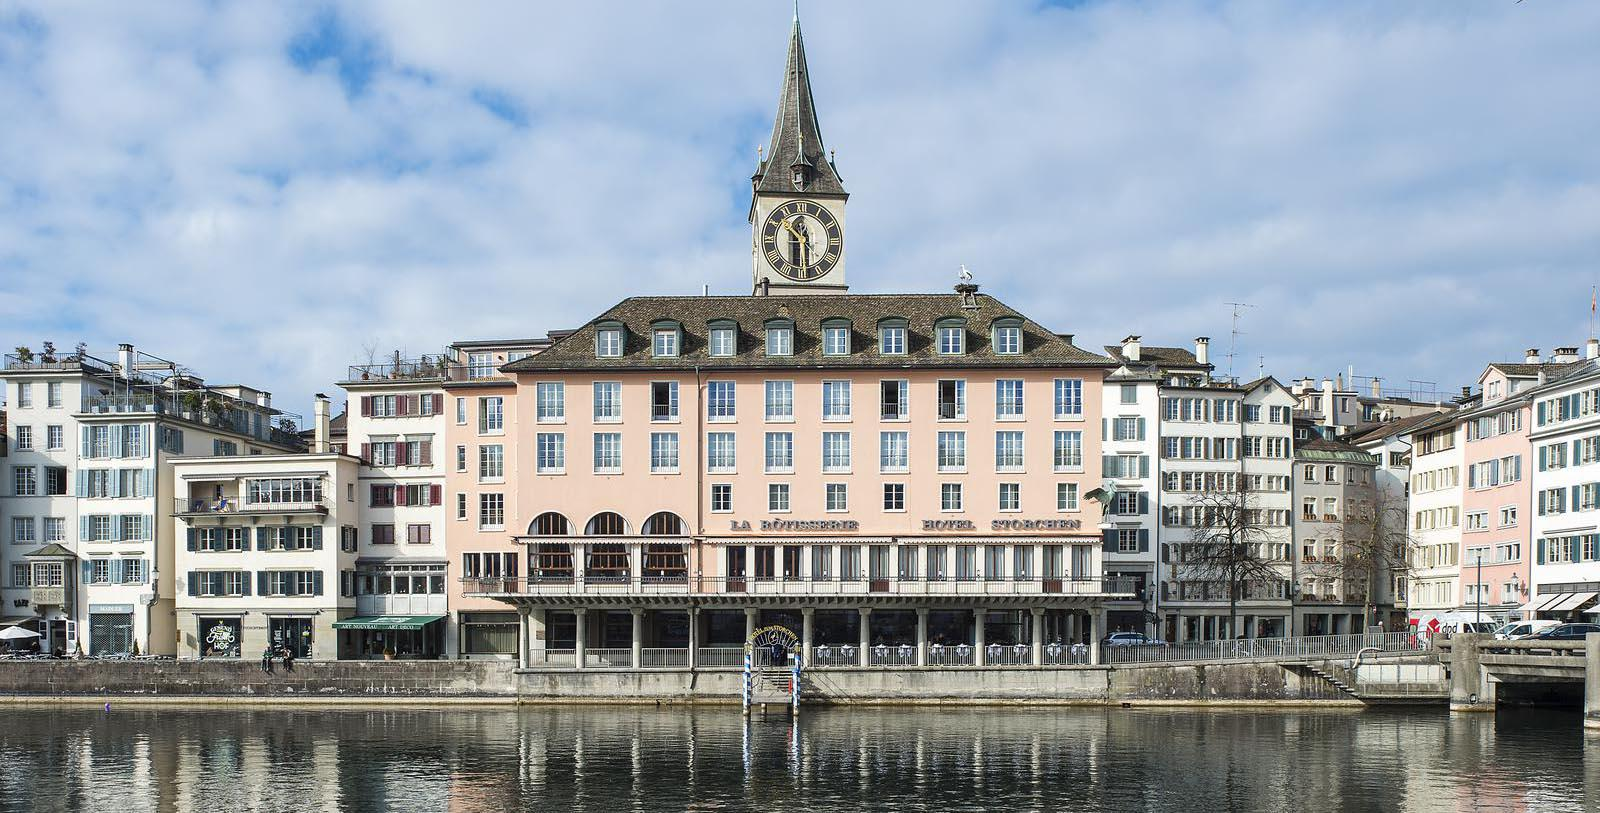 Image of Hotel Exterior Storchen Zürich, 1357, Member of Historic Hotels Worldwide, in Zurich, Switzerland, Special Offers, Discounted Rates, Families, Romantic Escape, Honeymoons, Anniversaries, Reunions